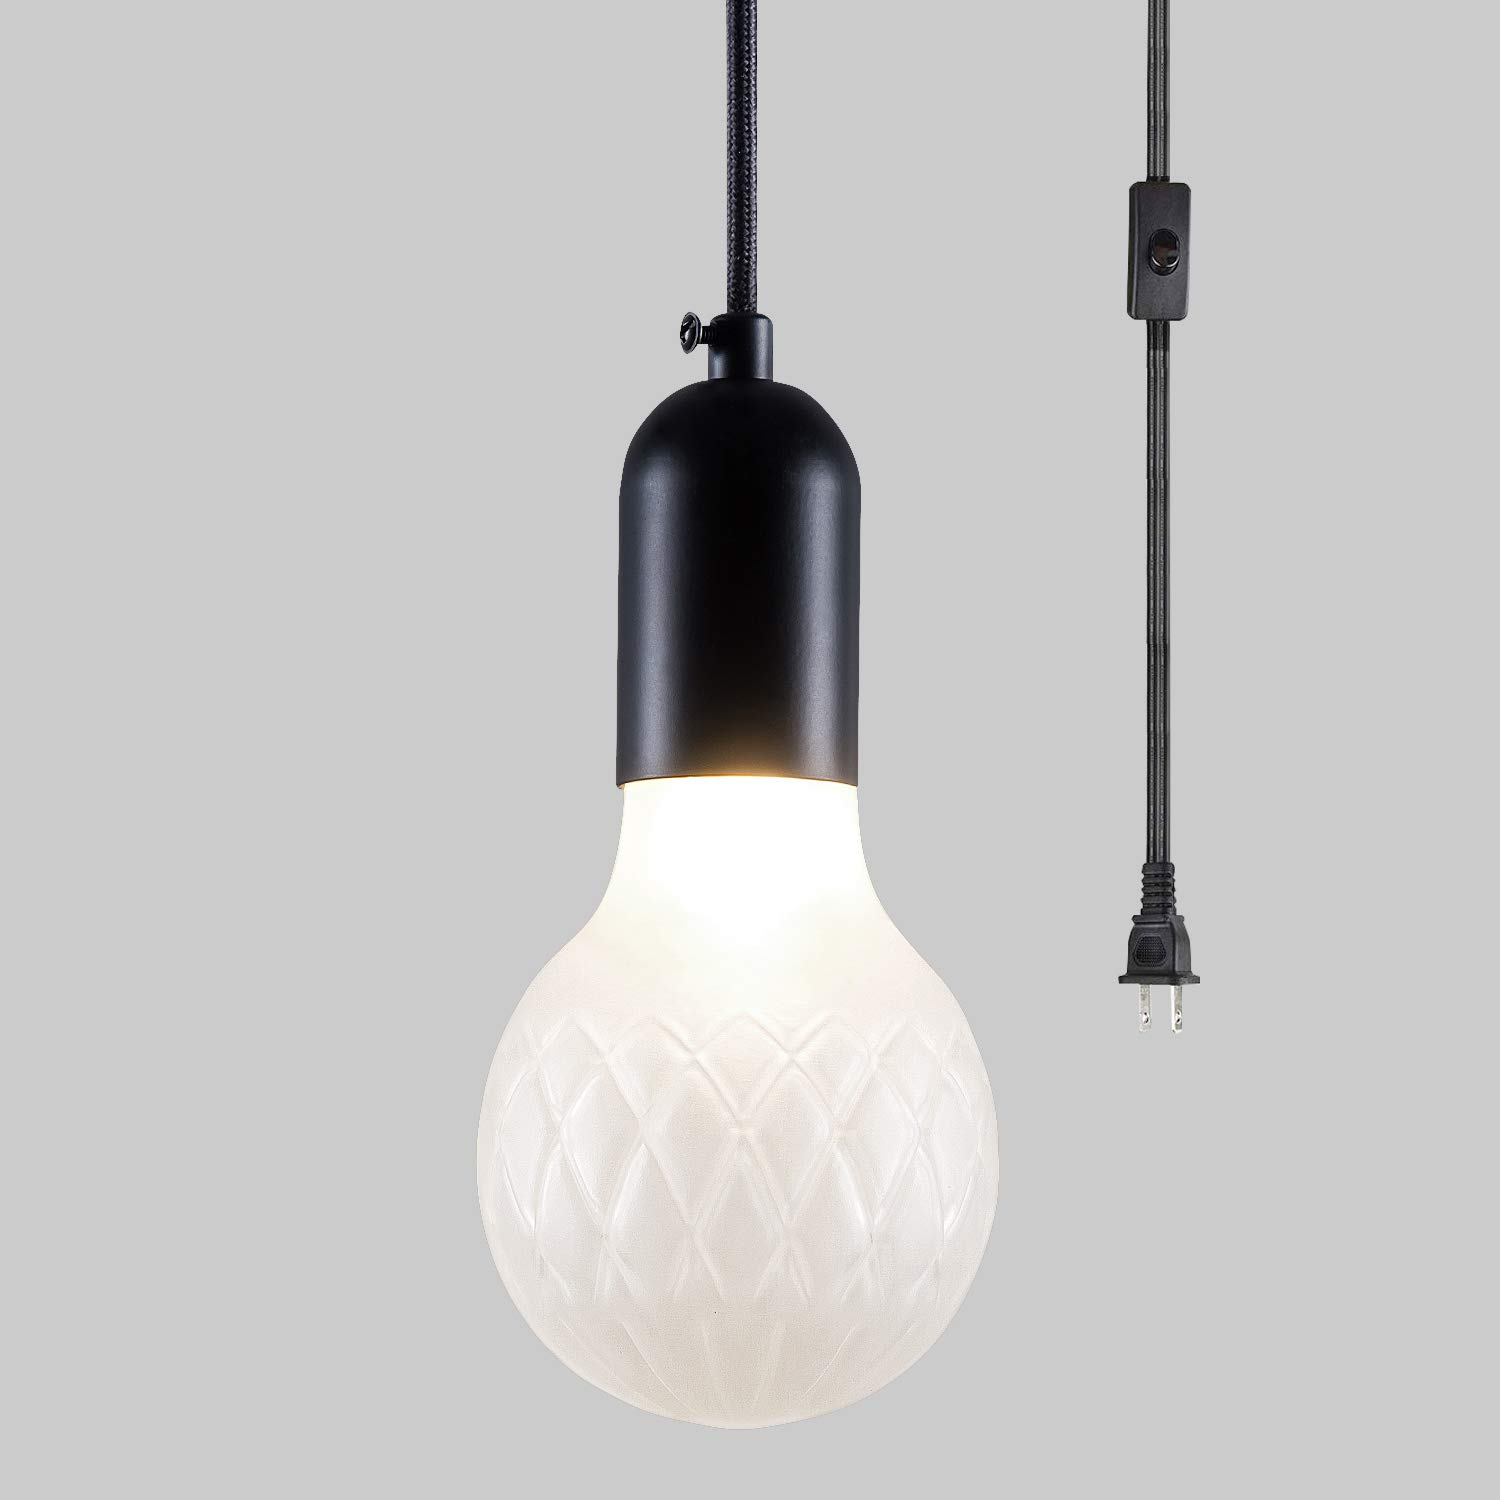 Matte Black Finish Yueju 3 8 Globe Frosted Glass Shade Pendant Lamp For Bedroom Living Room Kitchen Island Outdoor Modern Swag Hanging Lights With Plug In Cord And On Off Switch